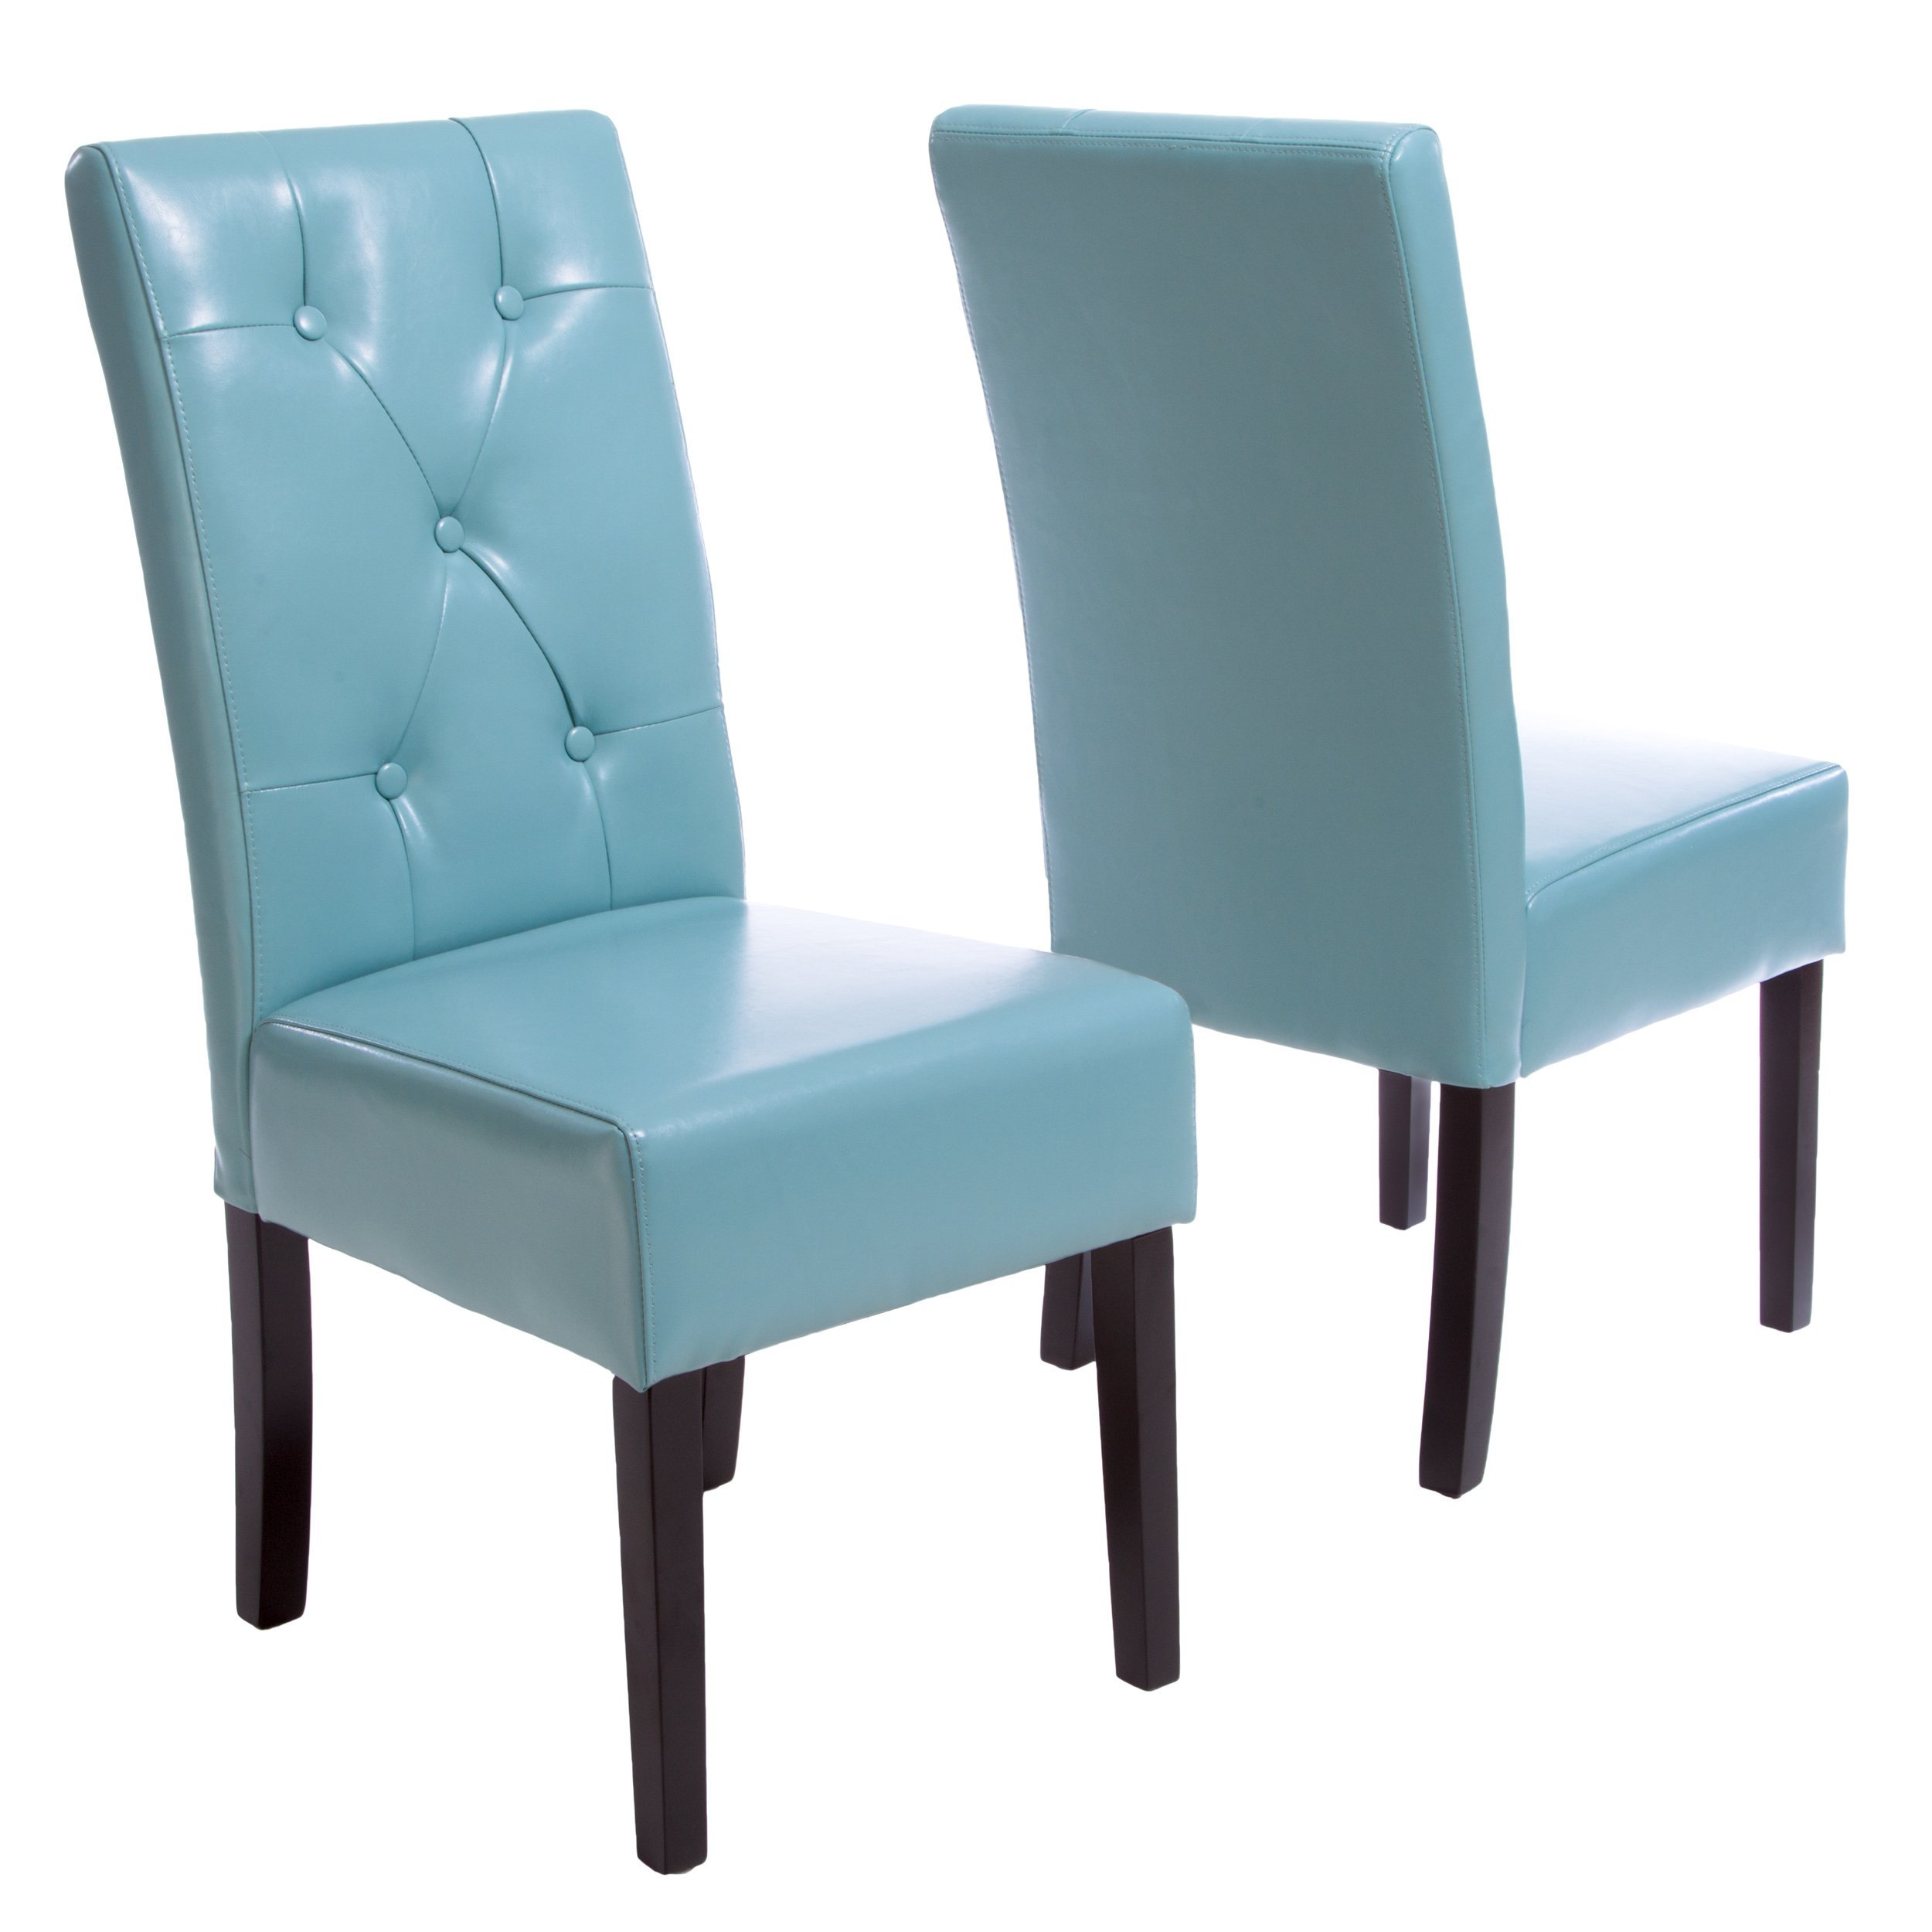 Teal Leather Chair Alexander Teal Bonded Leather Dining Chair Set Of 2